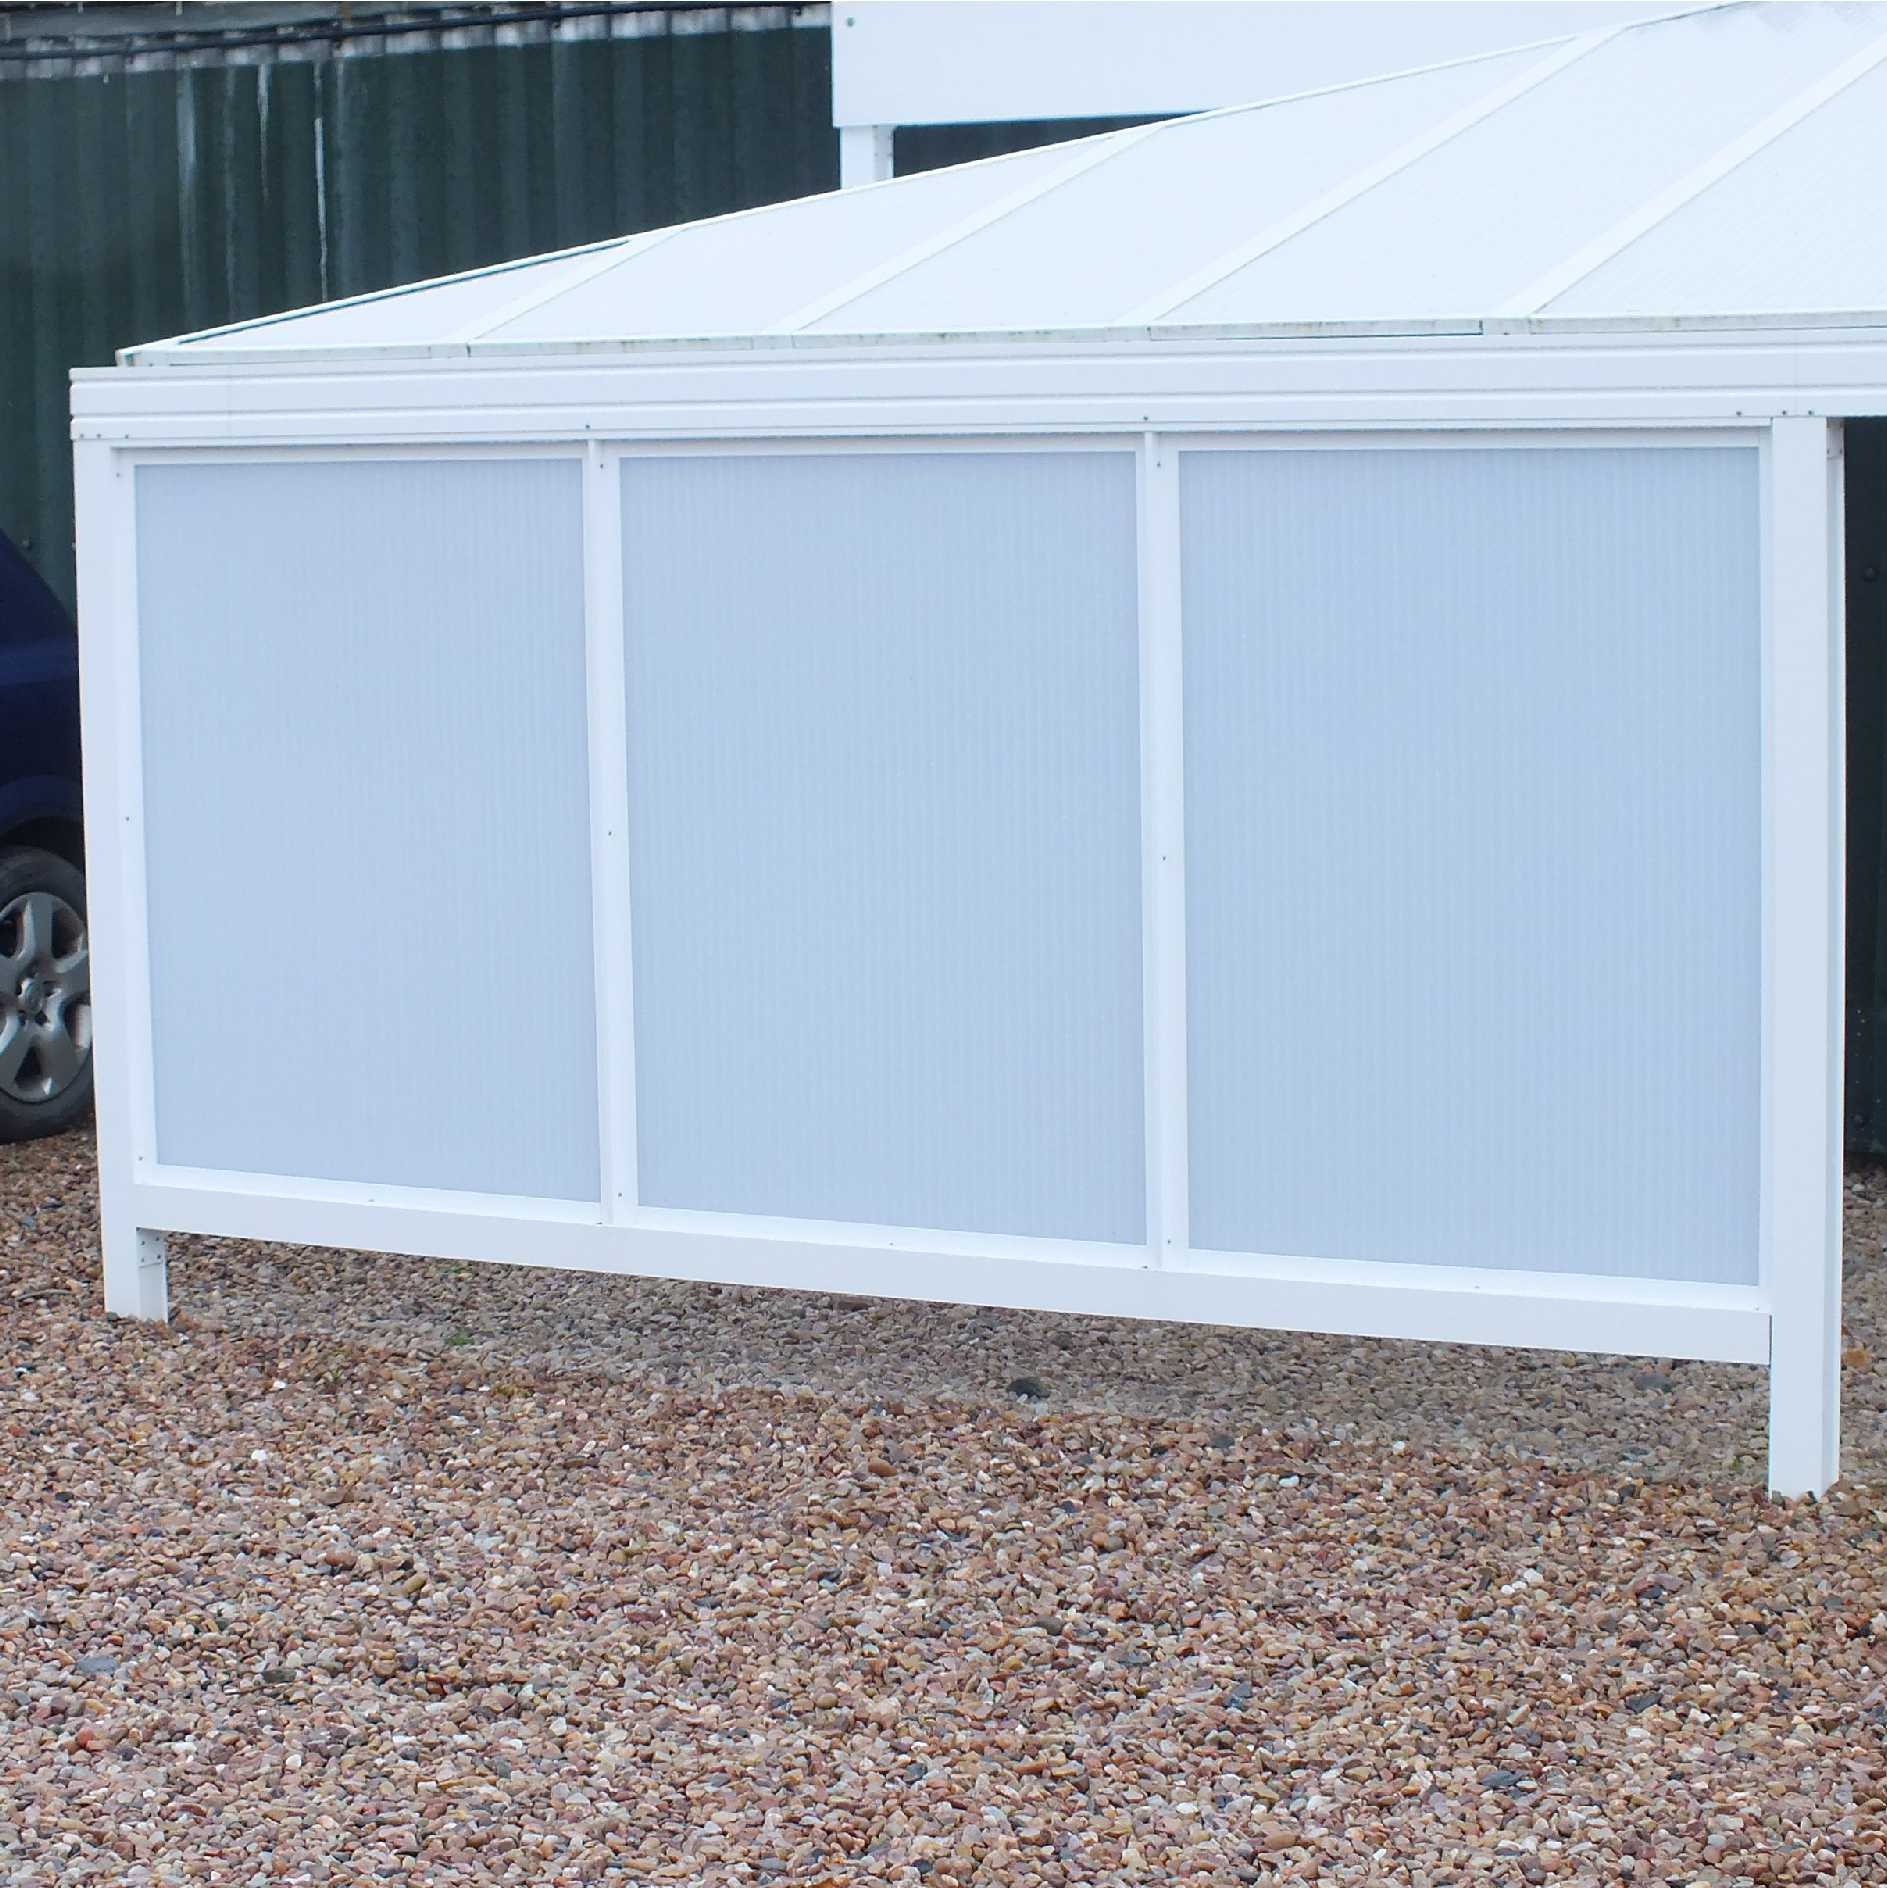 Omega Smart Canopy - UNDER EAVES In-Fill Sections (2 In-Fill Panels) for 2.1m, 3.5m, 4.2m, 6.3m Width Canopies,  6mm Glass Clear Plate Polycarbonate In-Fill Panels, White Frame